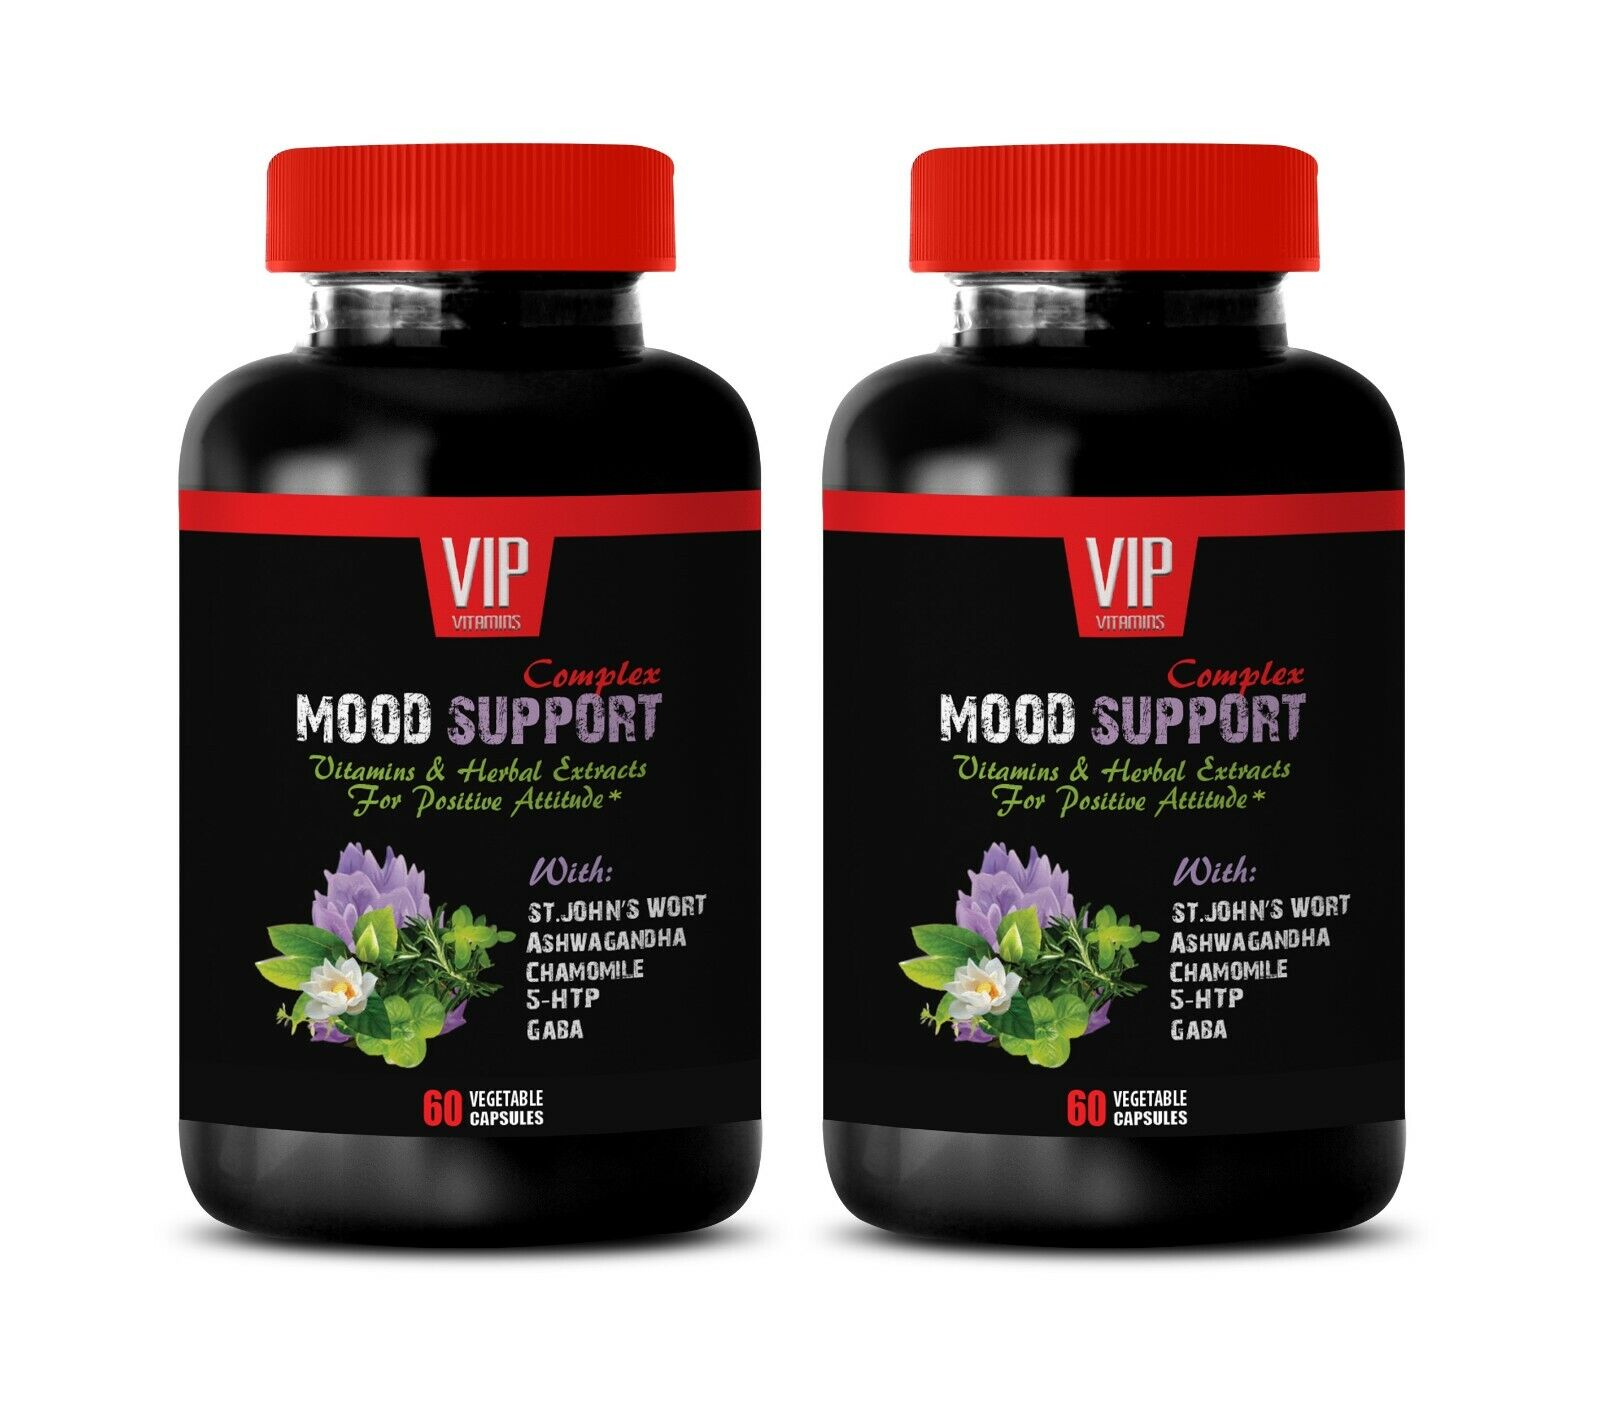 mood stabilizer for women mood support complex